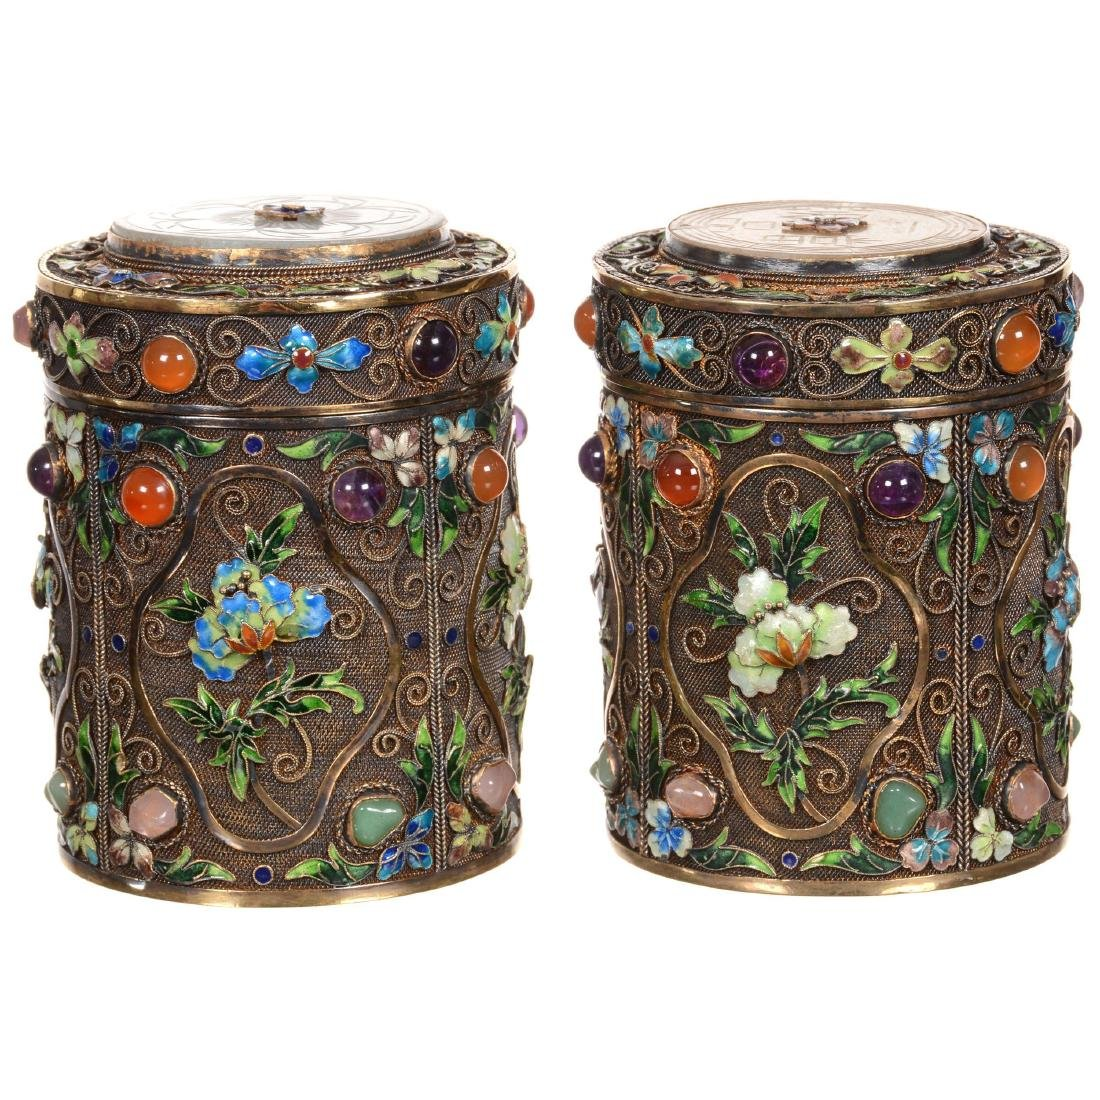 Pair of Chinese Enameled Gilded Silver Jars